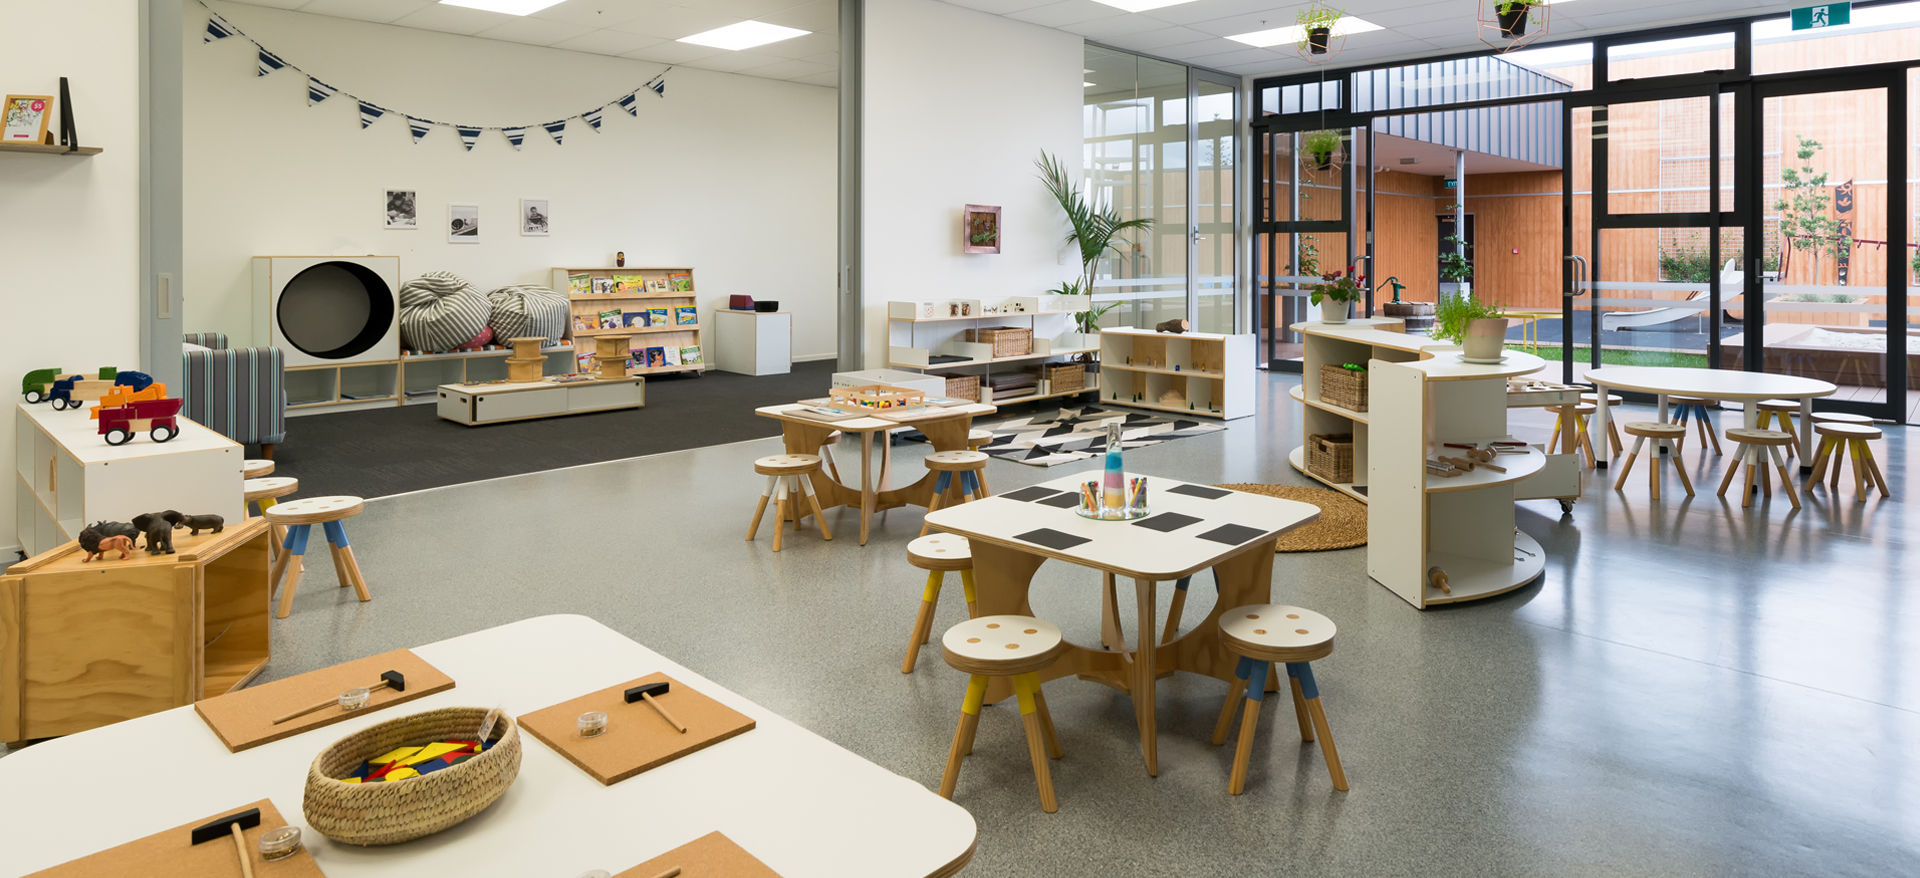 Co Kids Early Learning Centre, Henderson